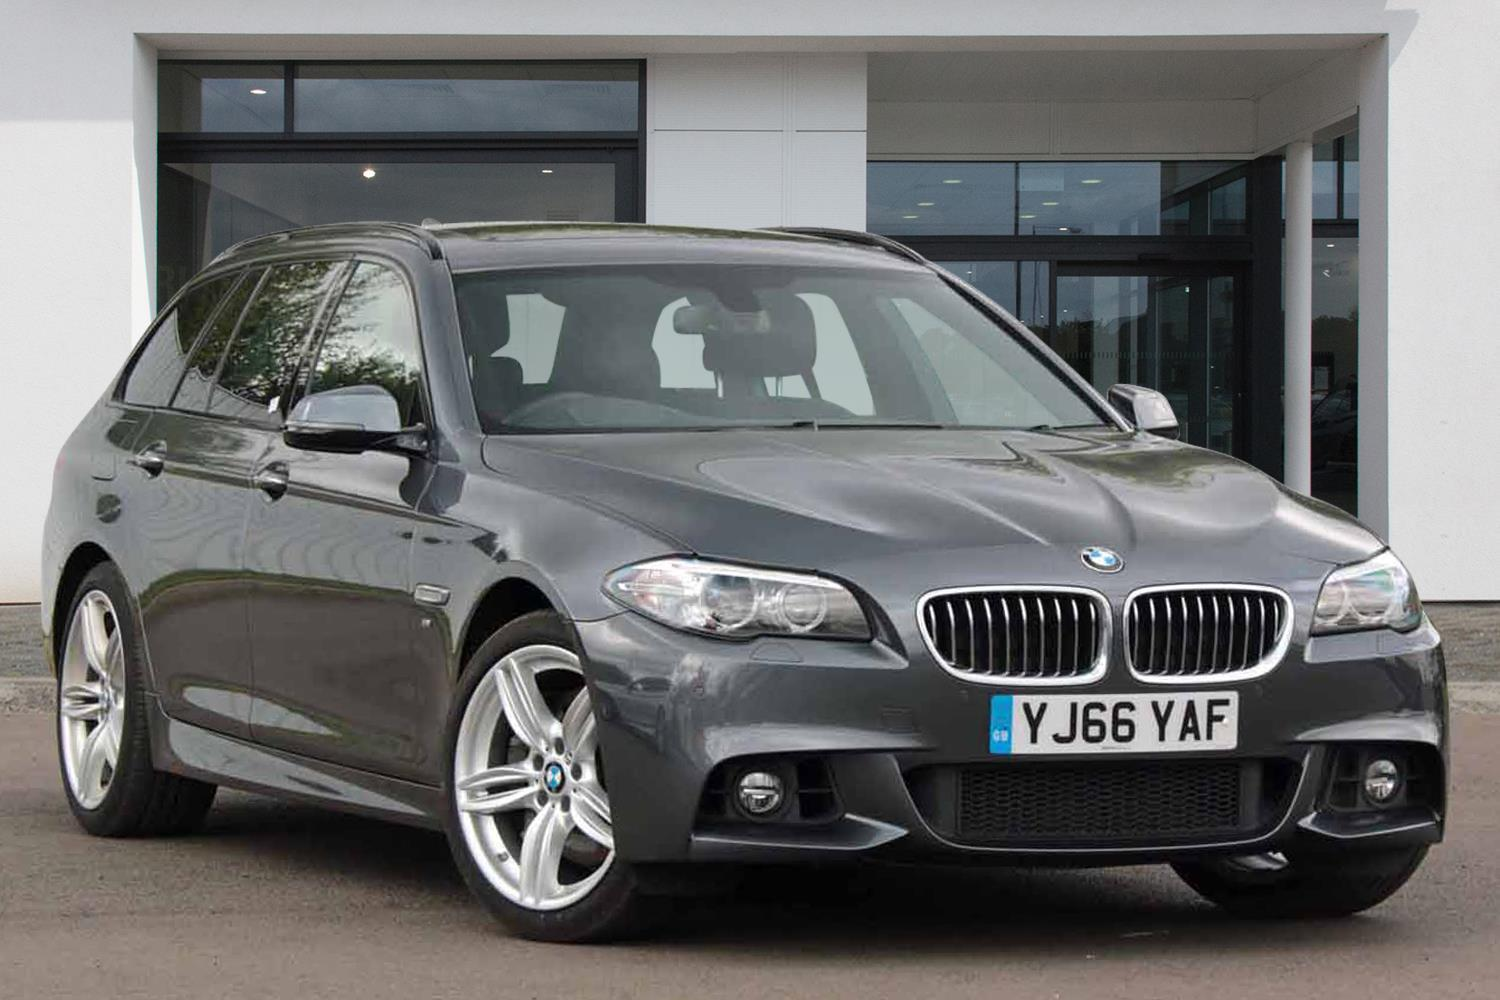 BMW 5 Series Touring YJ66YAF - Image 3